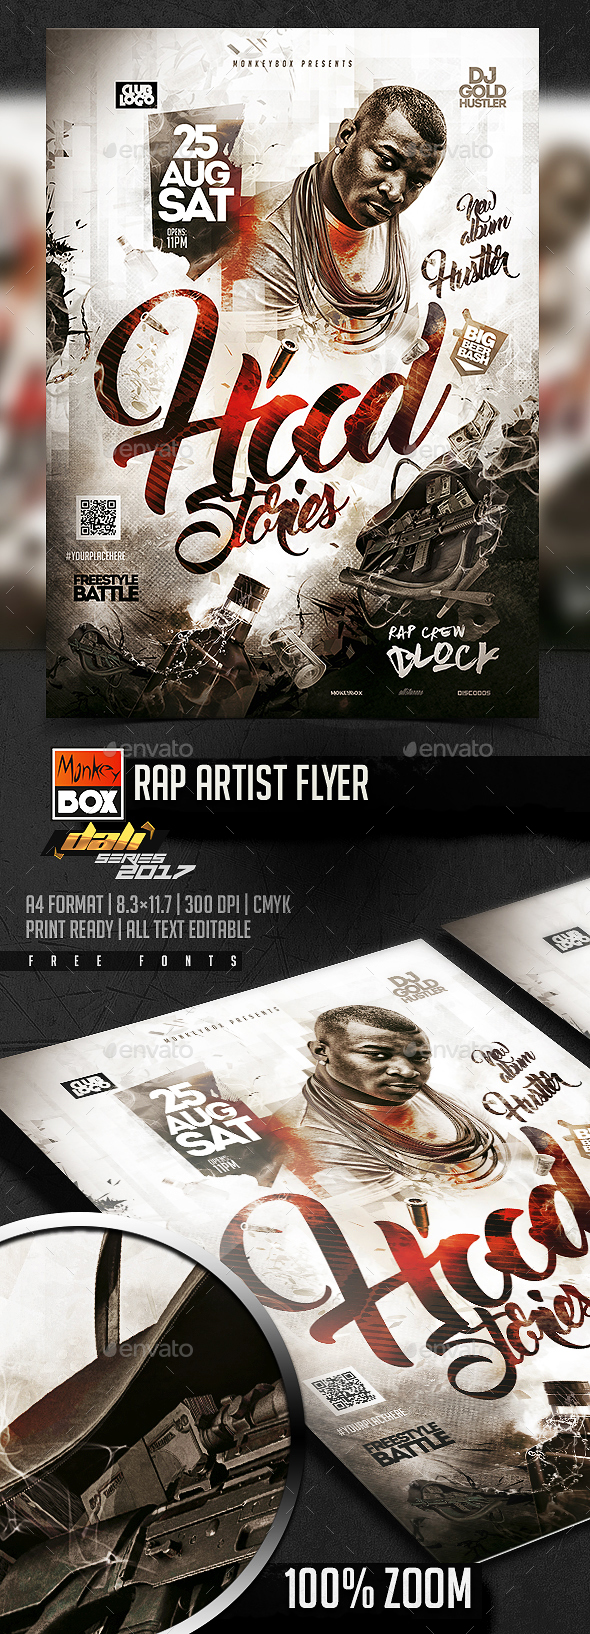 GraphicRiver Rap Artist Flyer 20437587